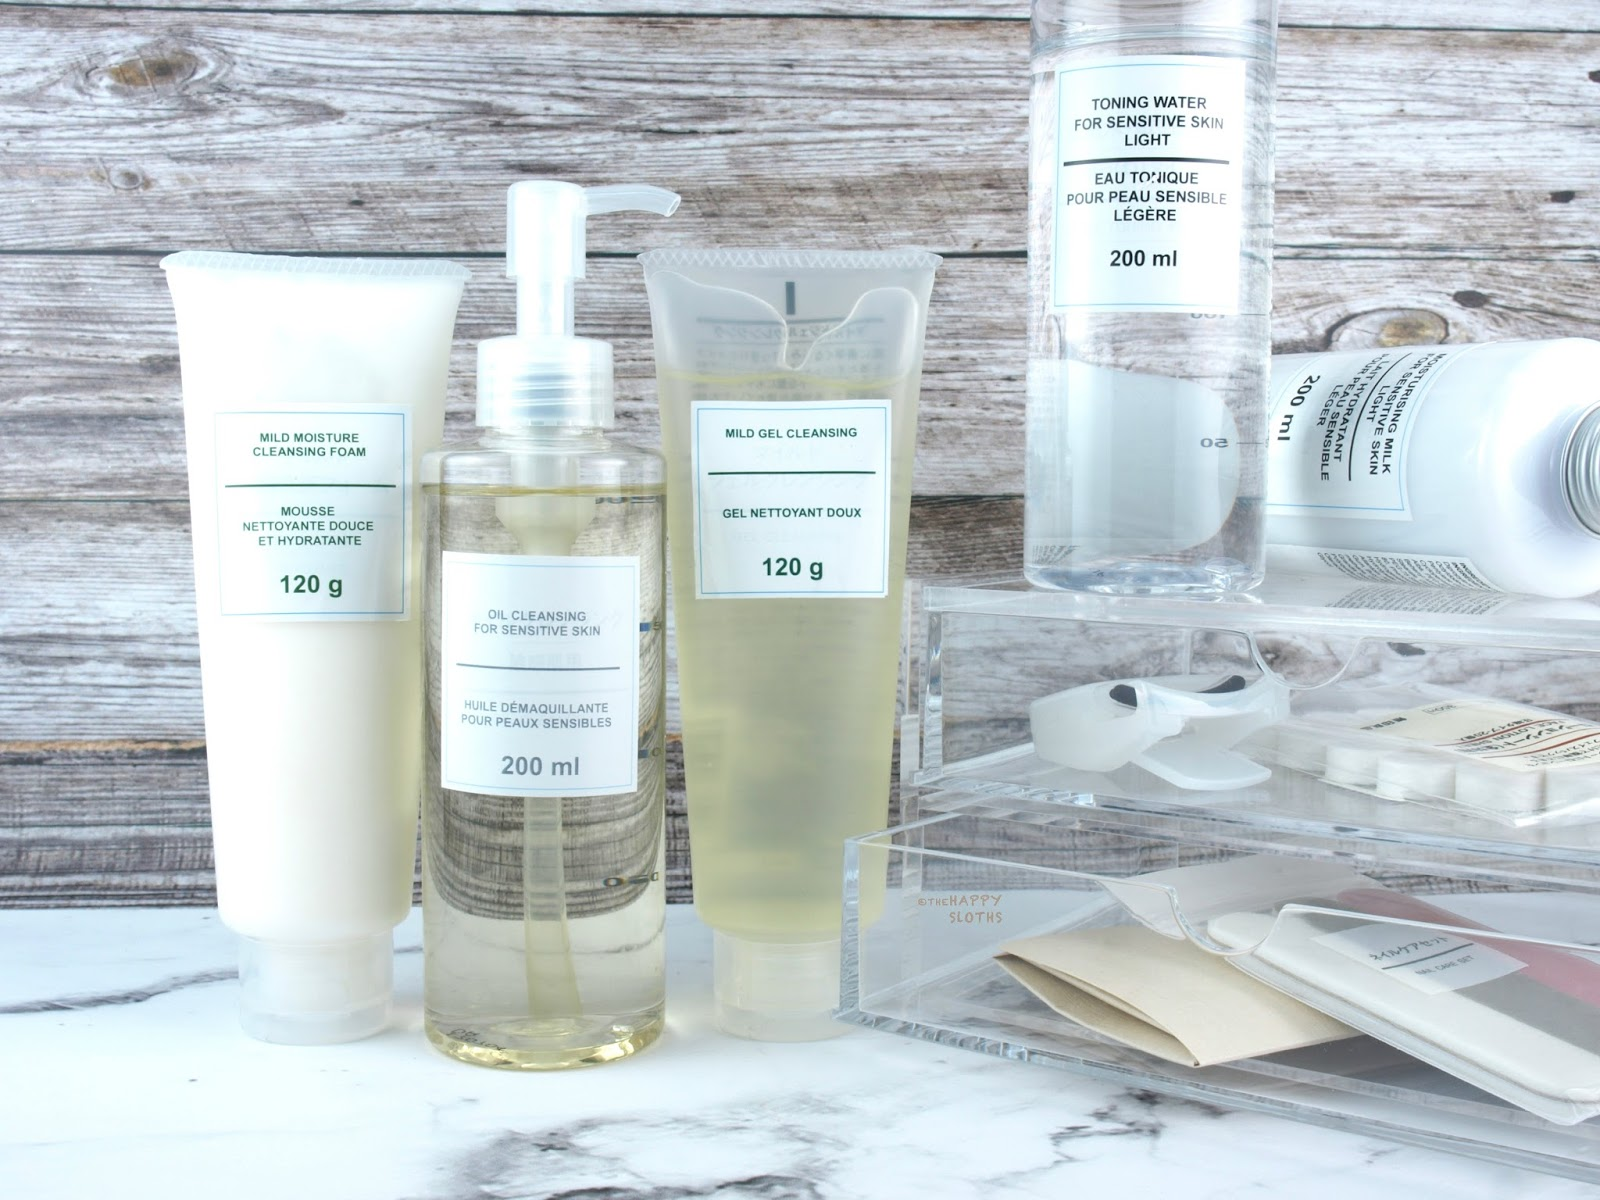 MUJI Skincare | Mild Moisture Cleansing Foam, Sensitive Skin Cleansing Oil, Mild Cleansing Gel: Review